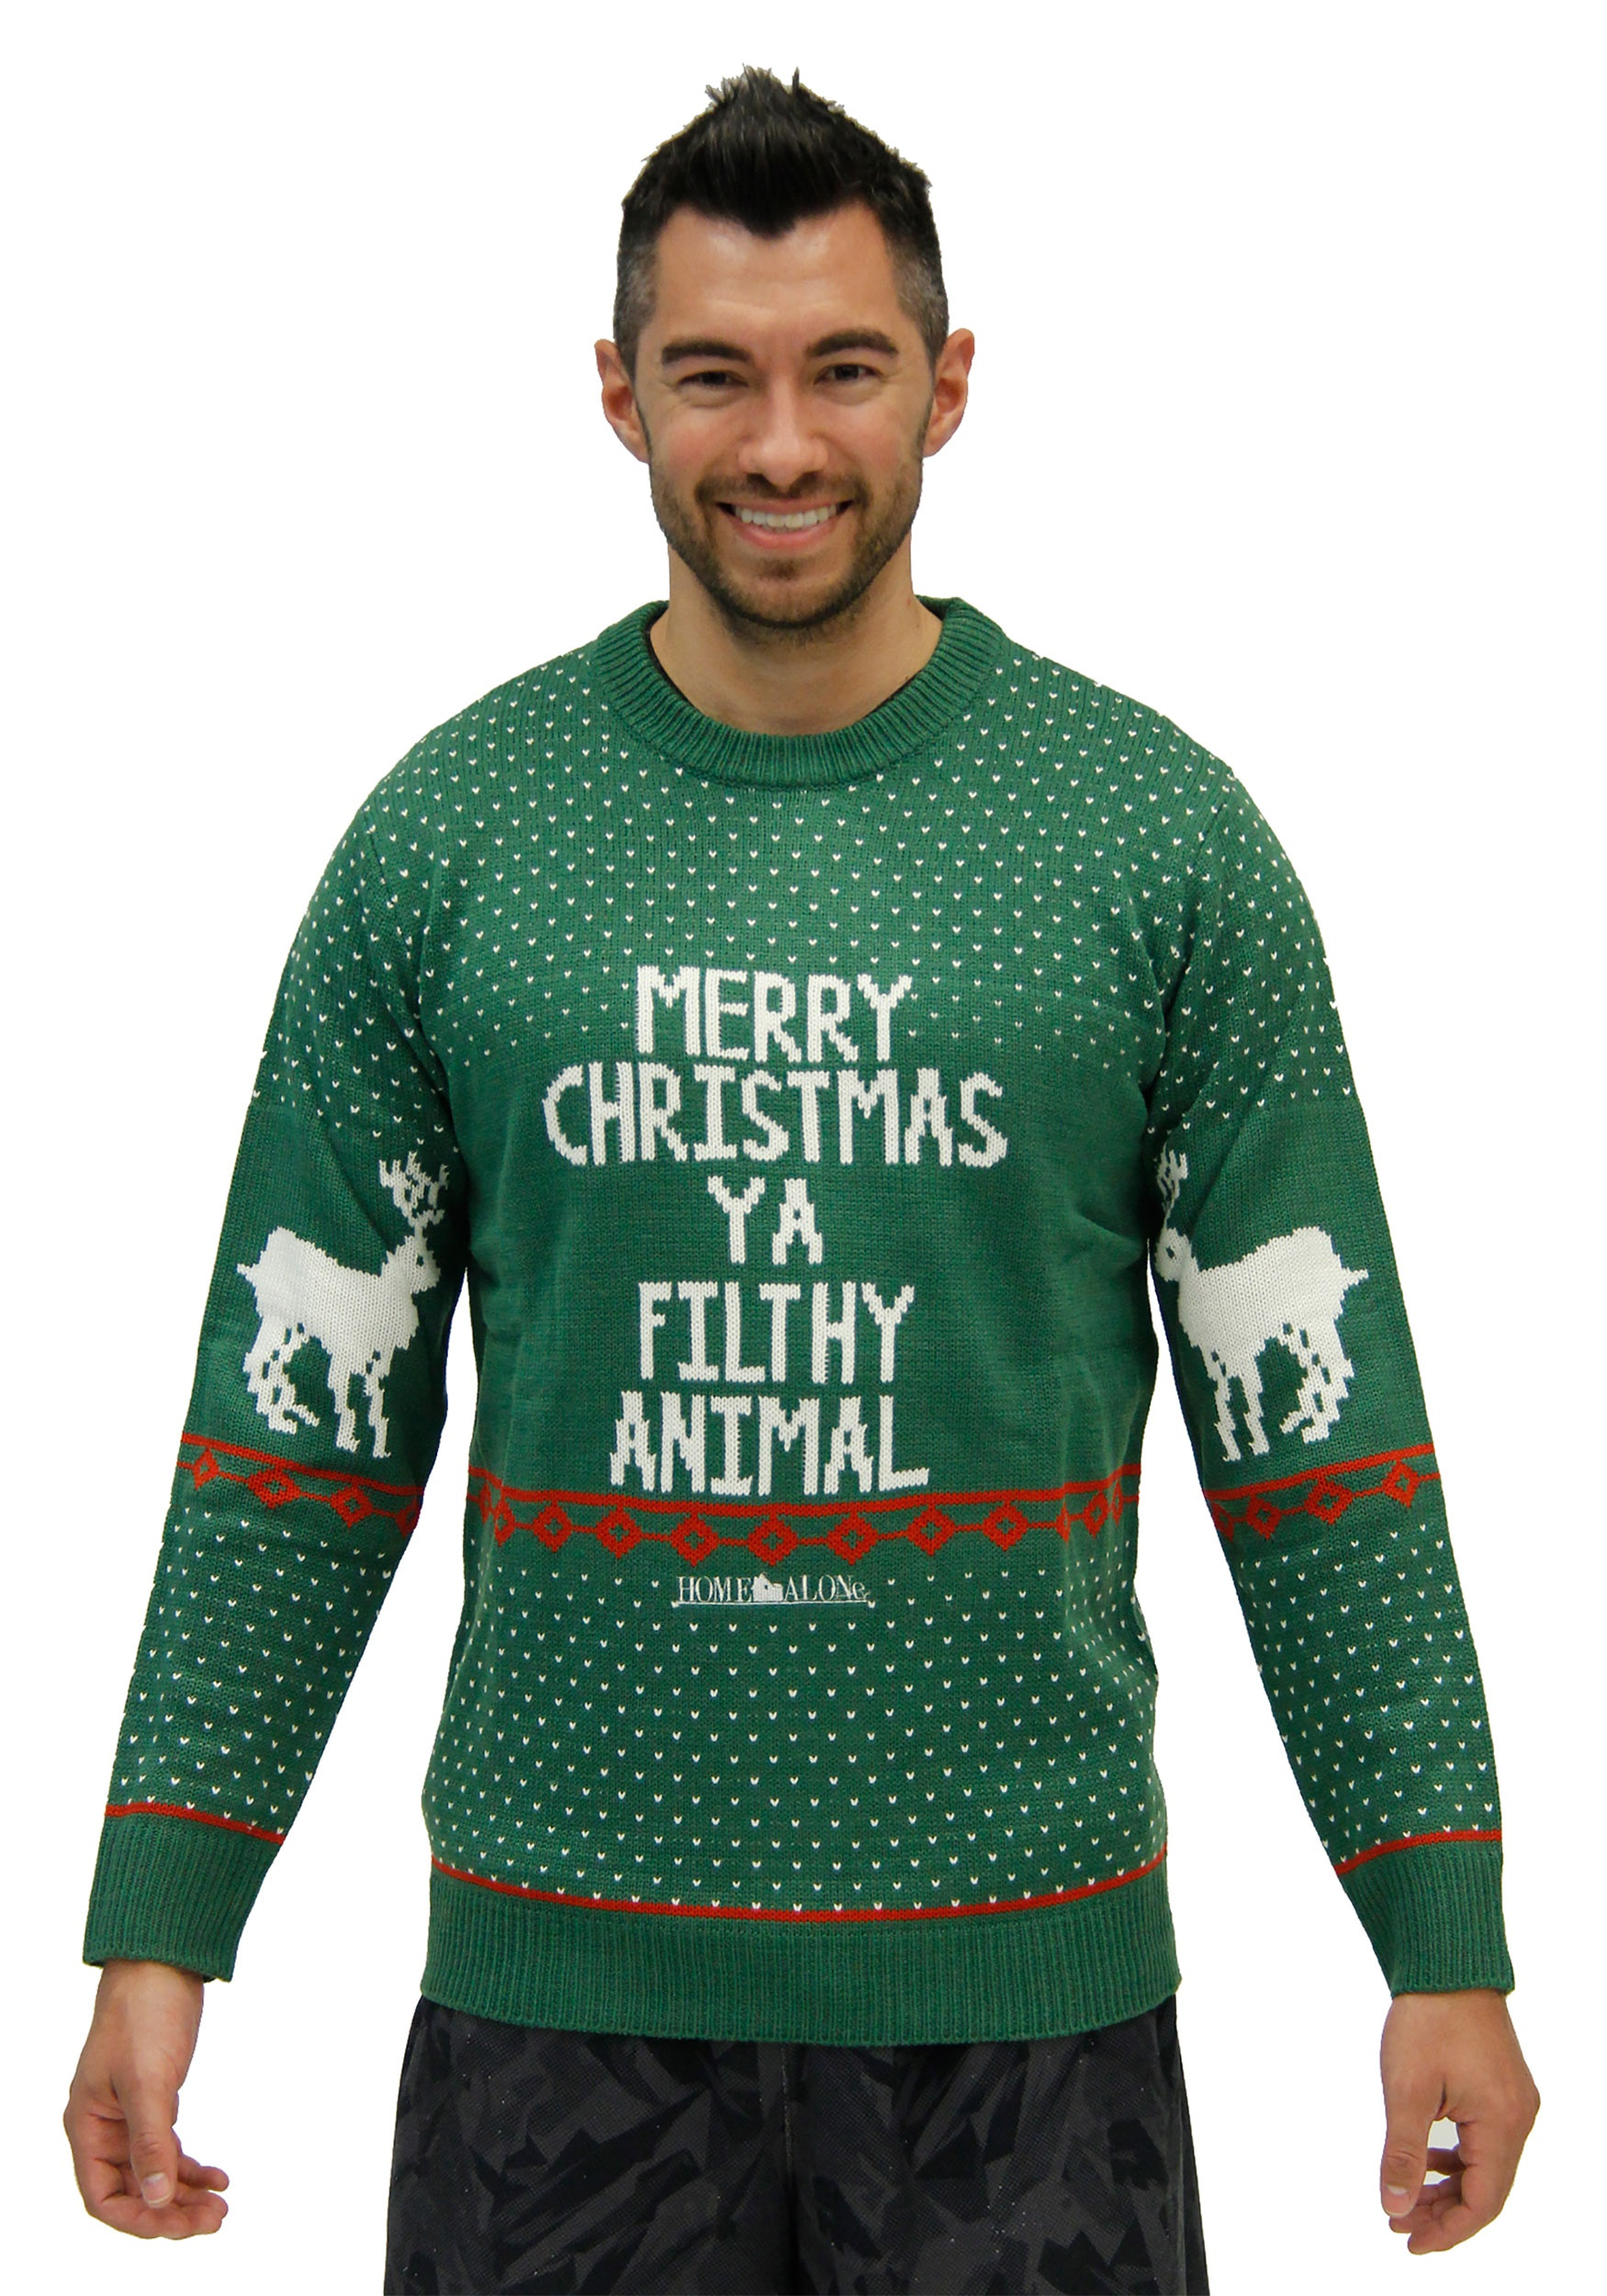 2a8a495a5b08 Home Alone Green Ya Filthy Animal Plus Size Ugly Xmas Sweater